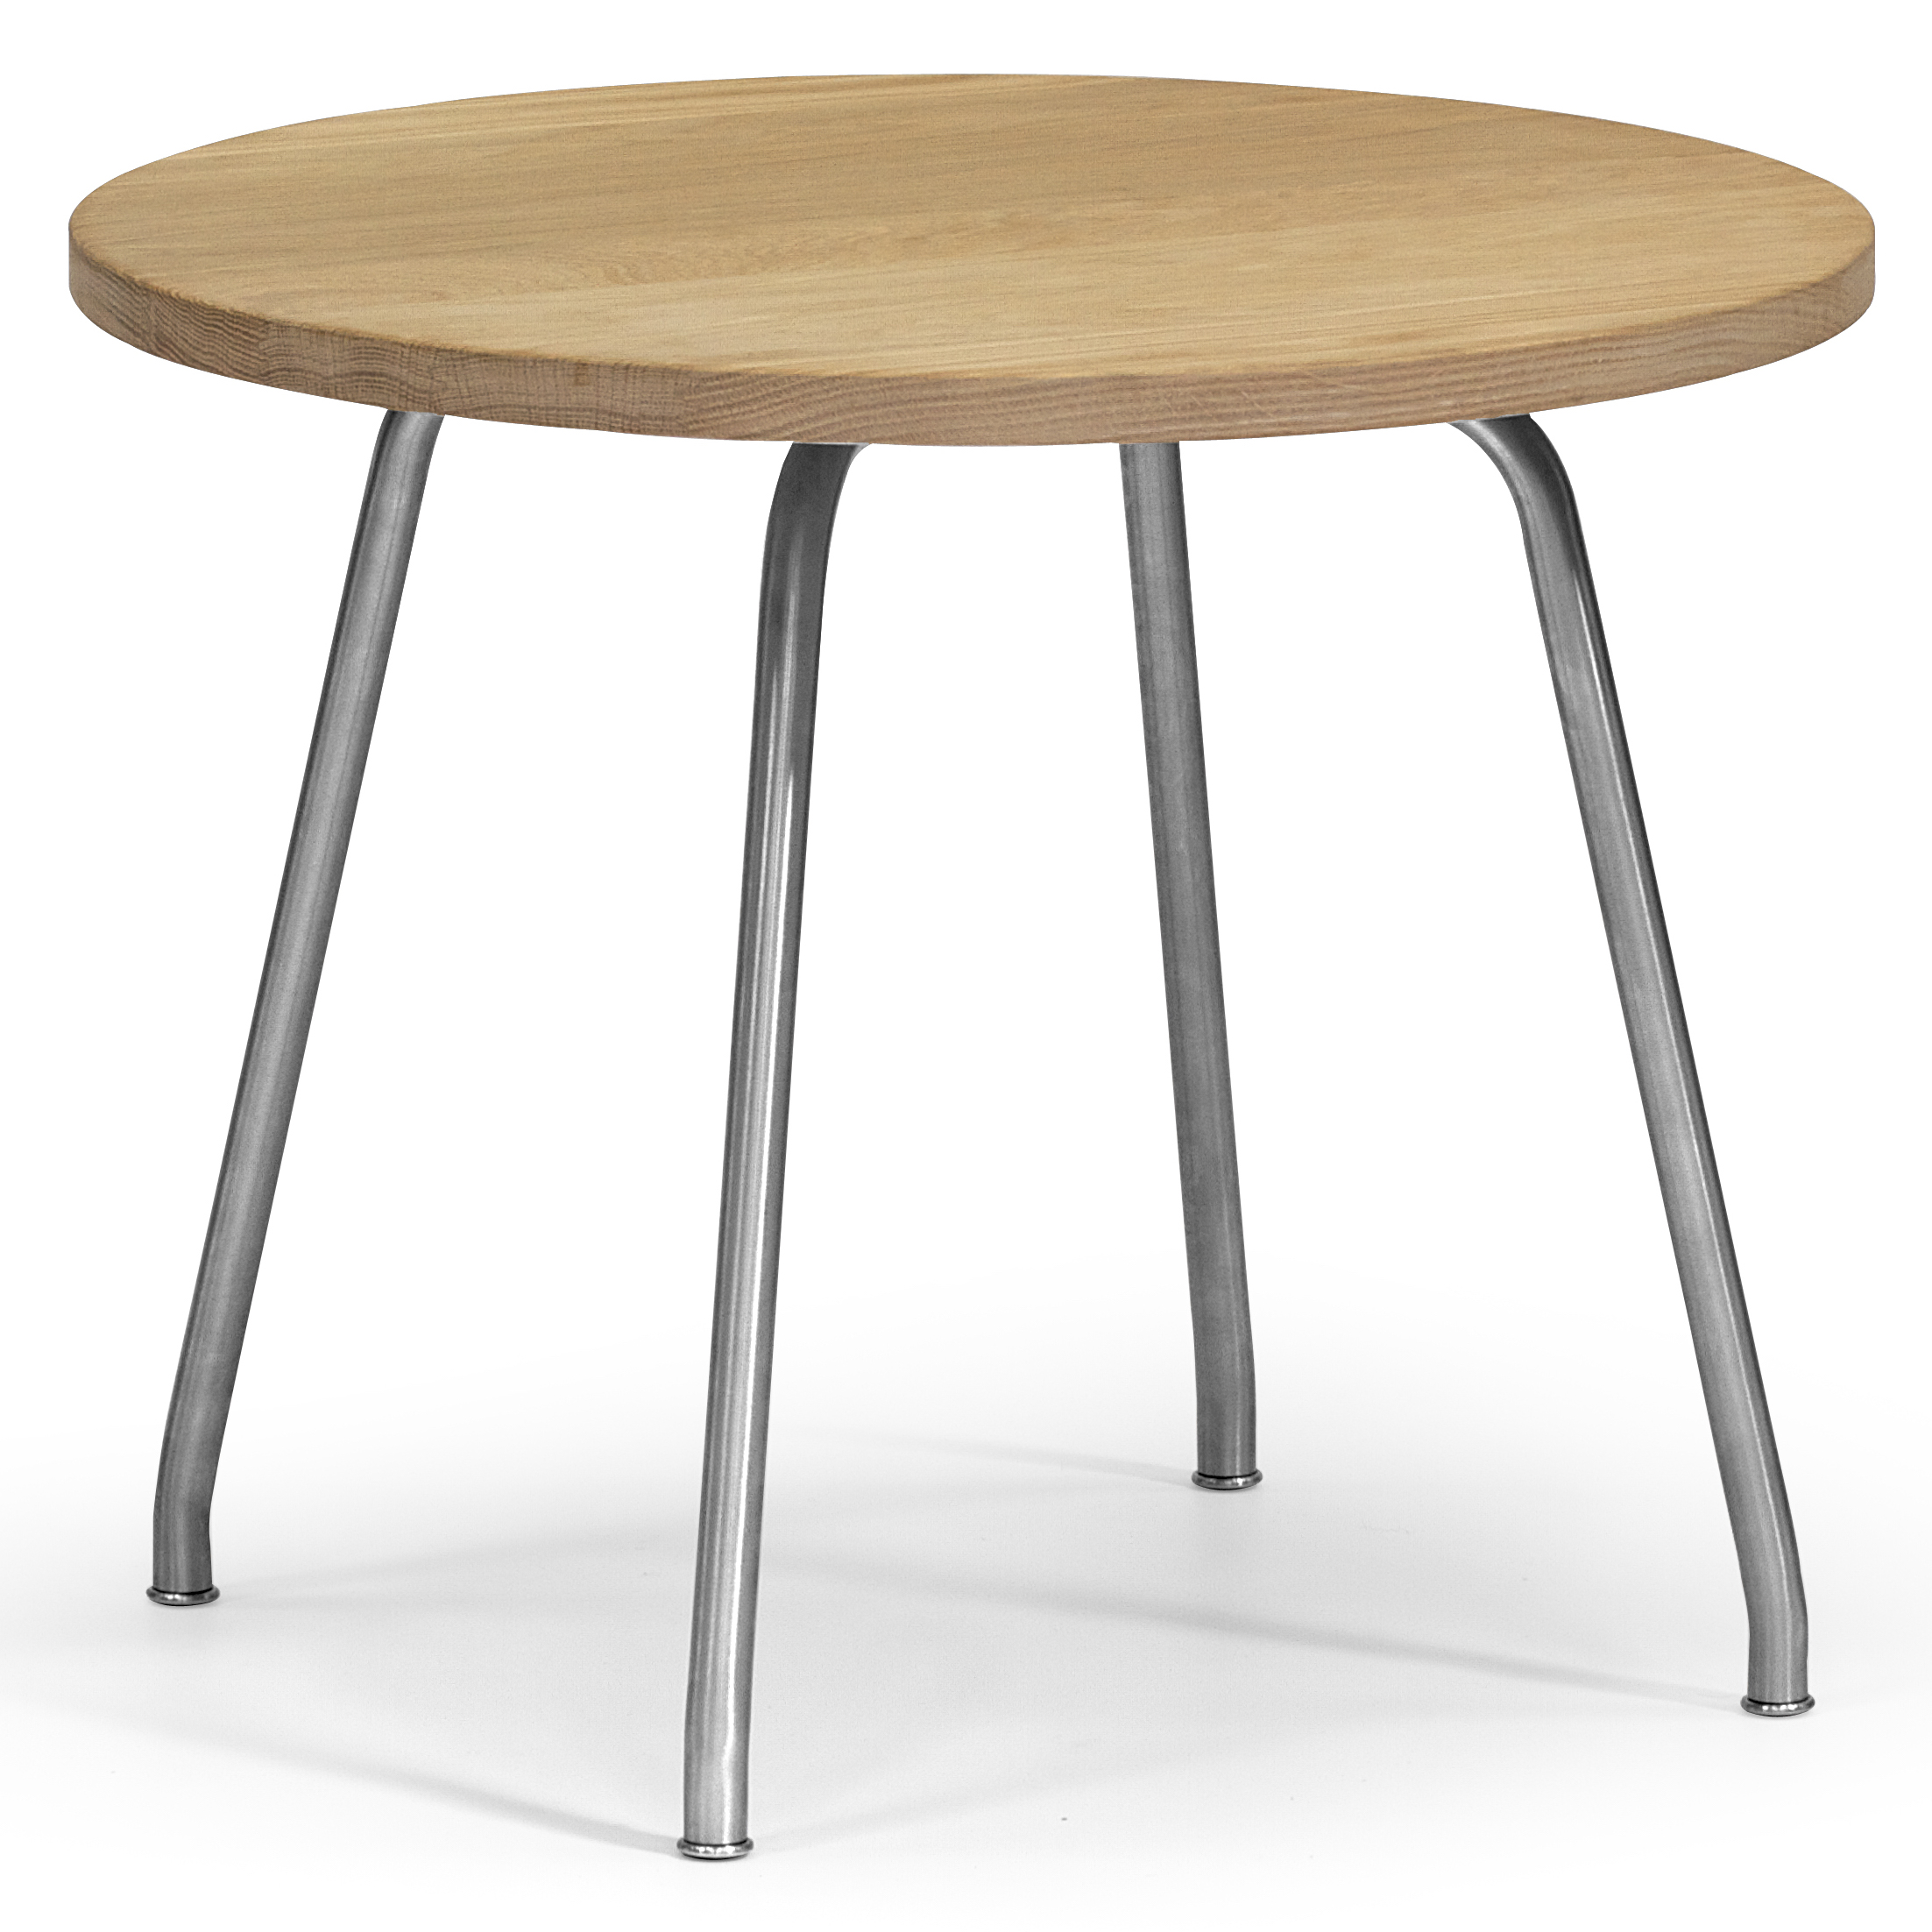 Carl Hansen & Son CH415 coffee table